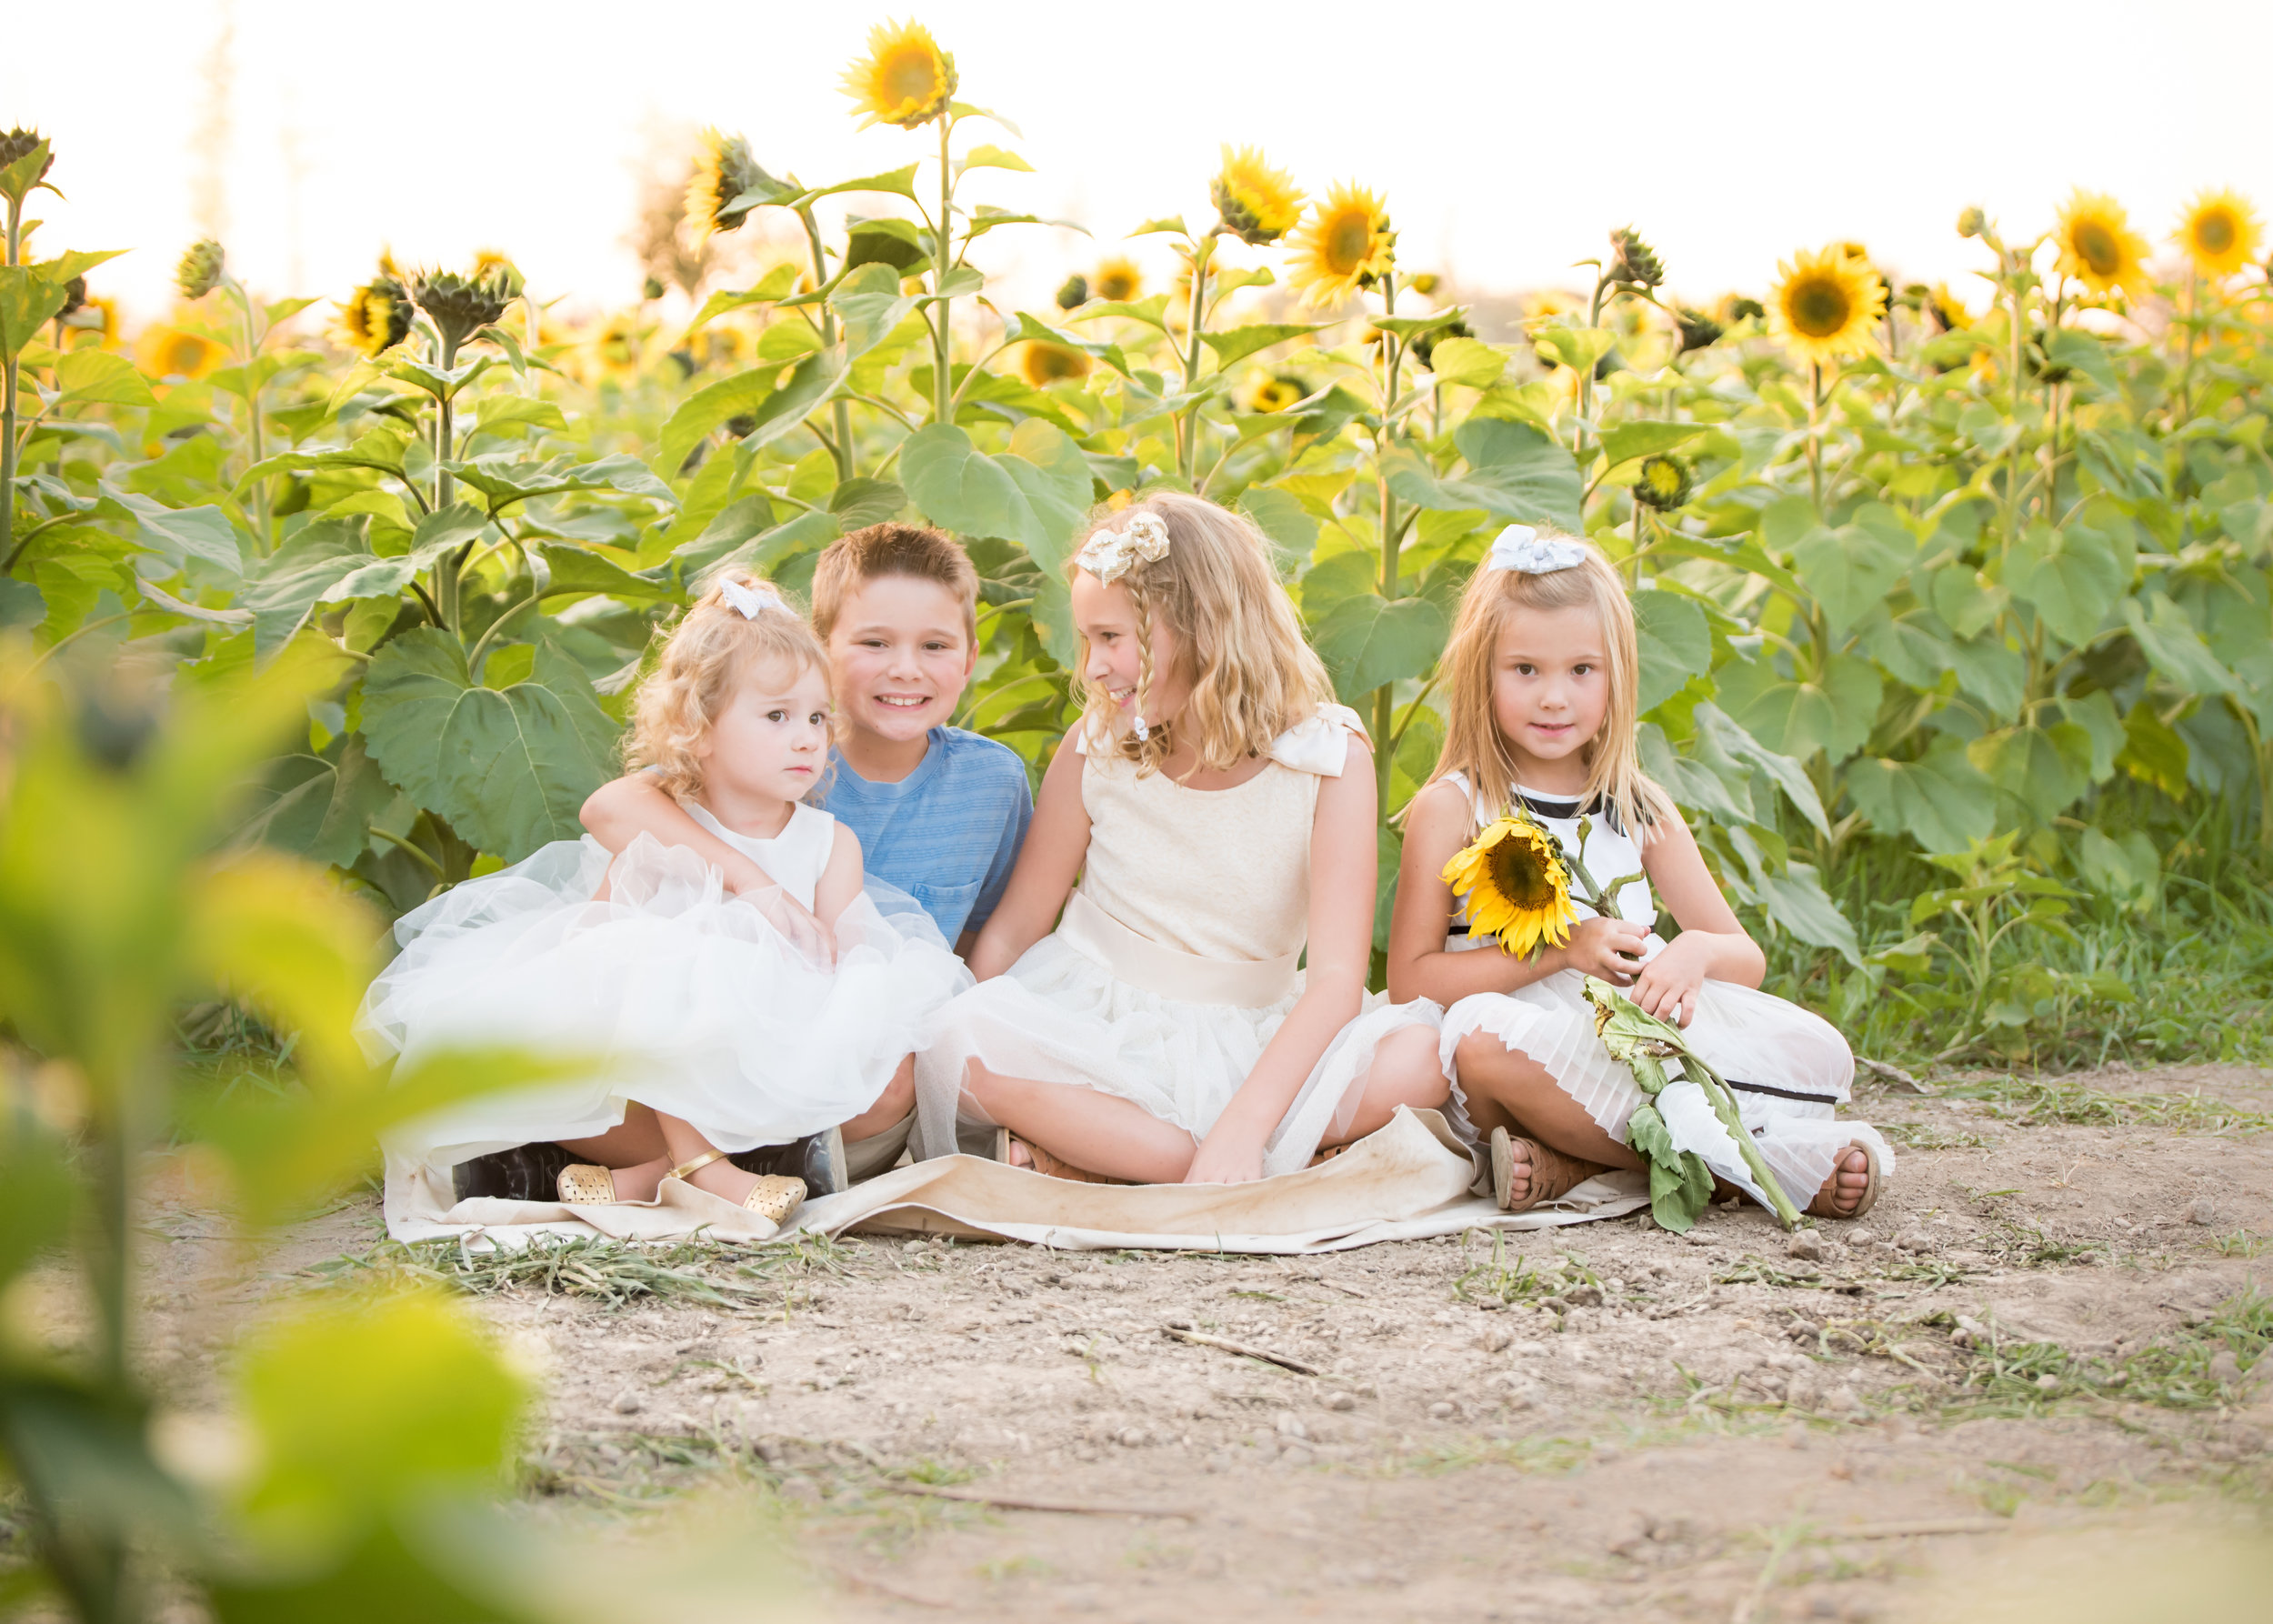 Cleveland Family Photographer, Cleveland Child Photographer, Cleveland Baby Photographer, Sunflower Family Session, Sunflower Mini Session